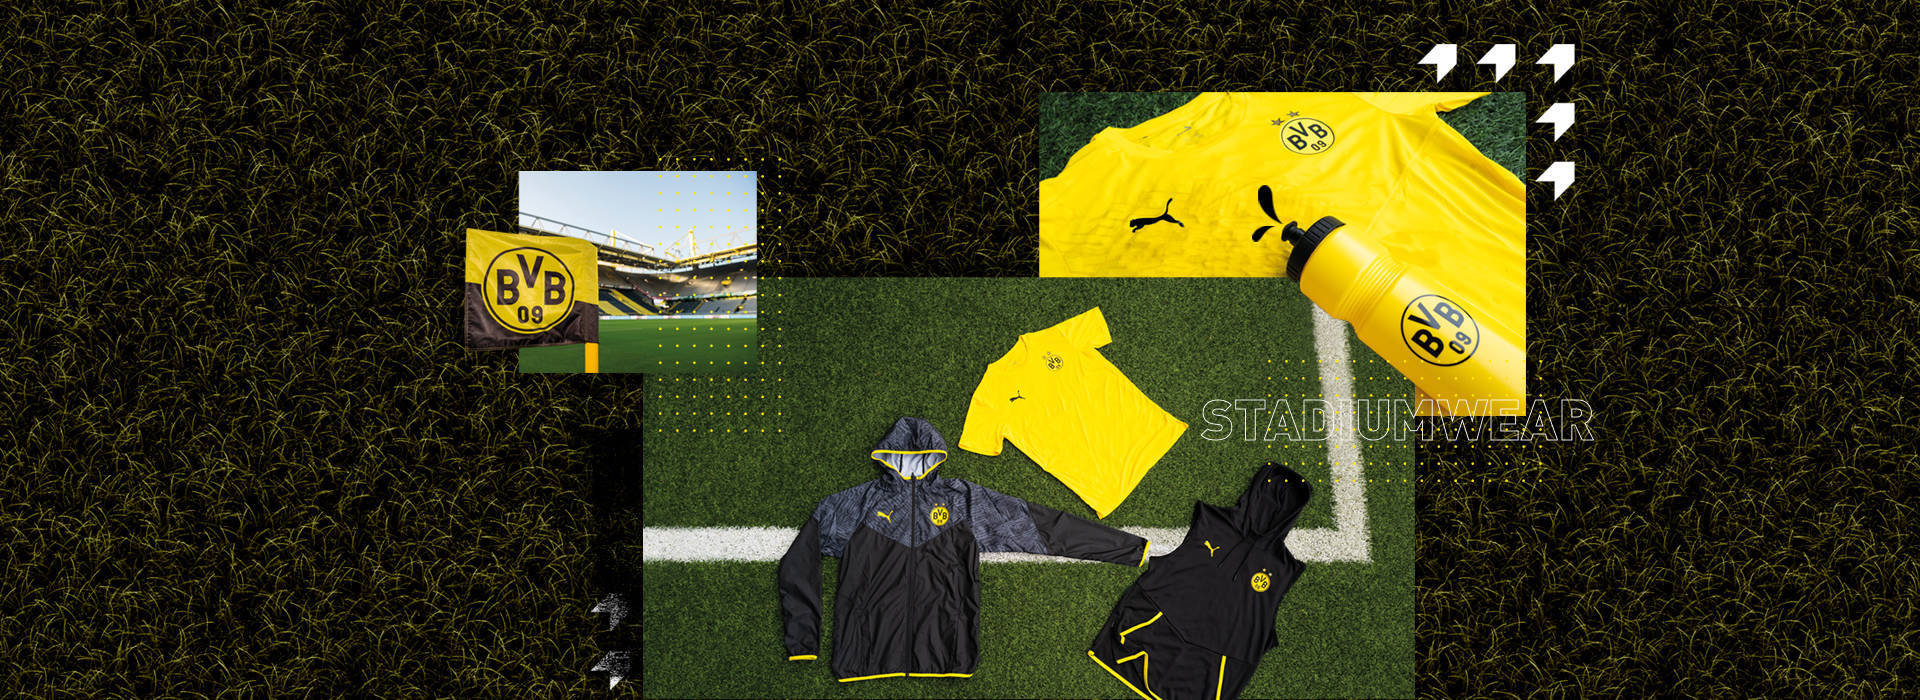 BVB-FanShop Our new BVB Stadium Collection